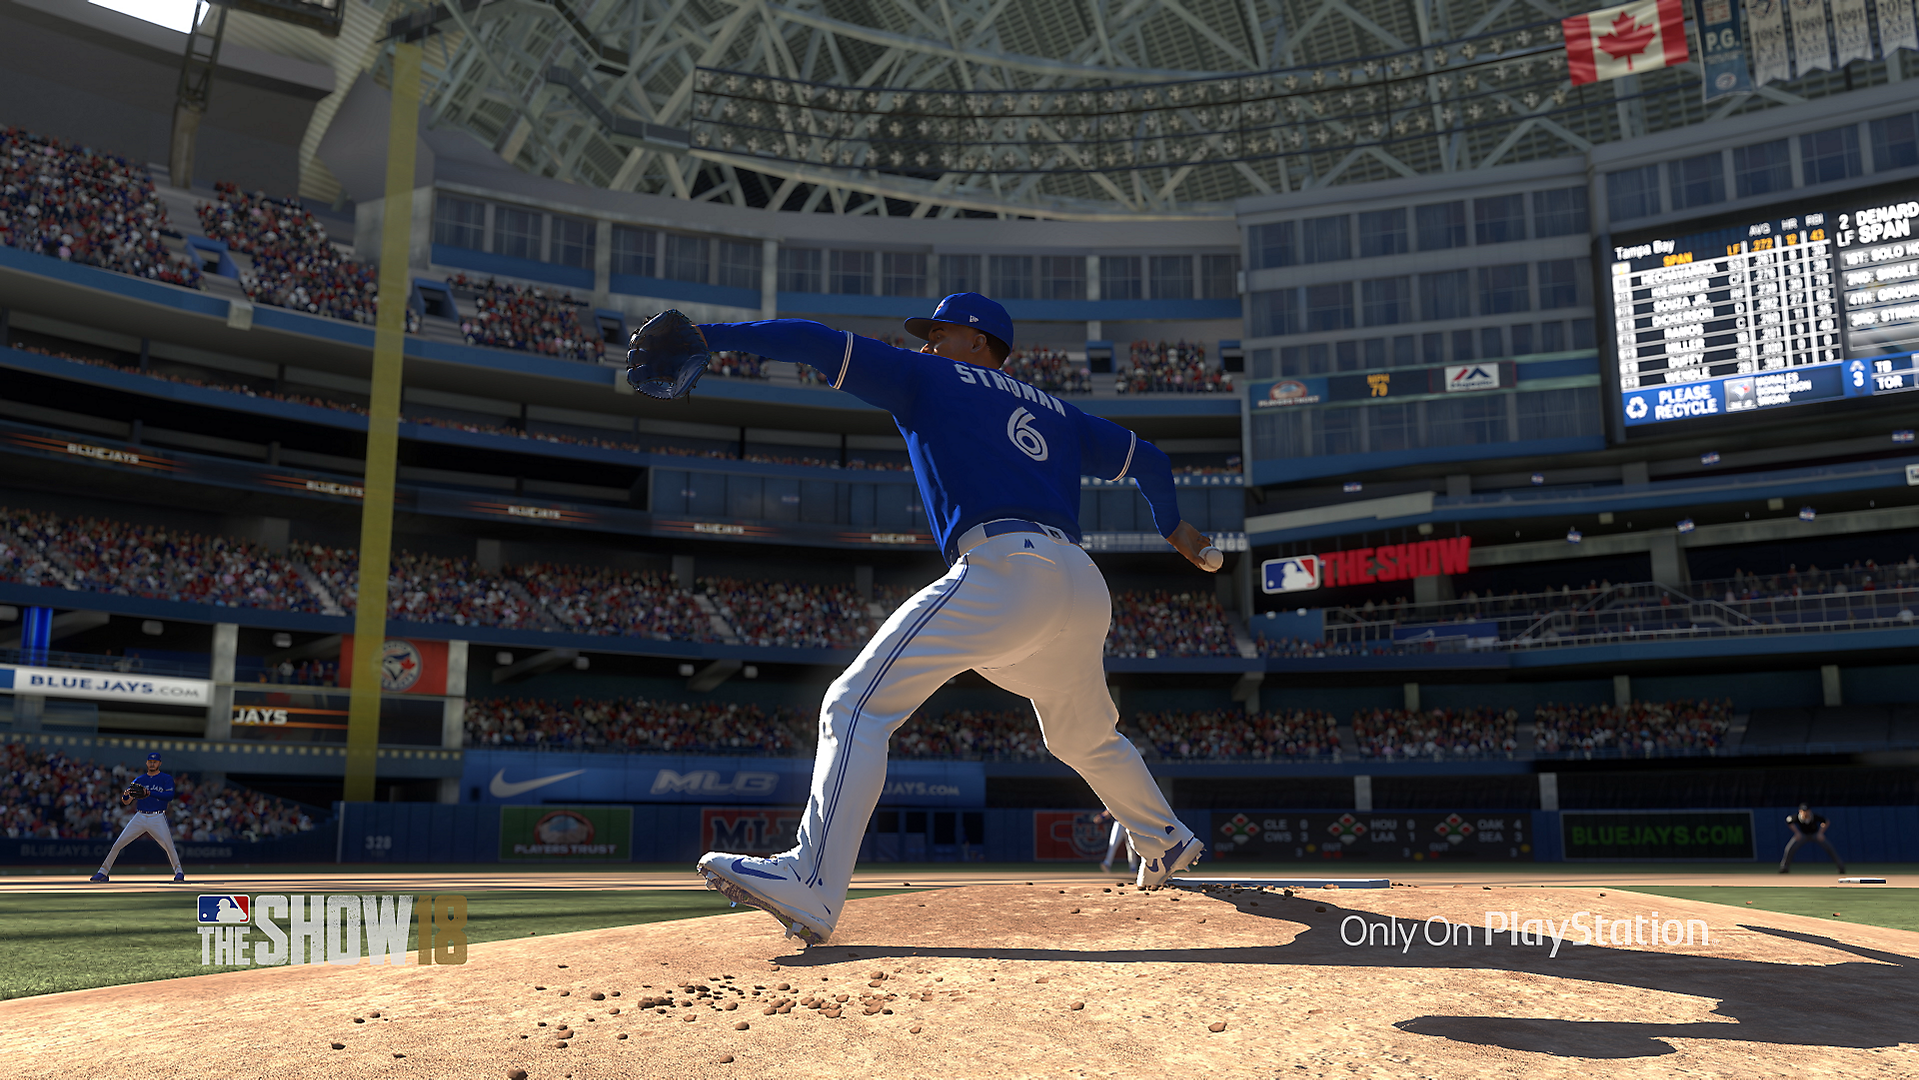 MLB The Show 18 #8